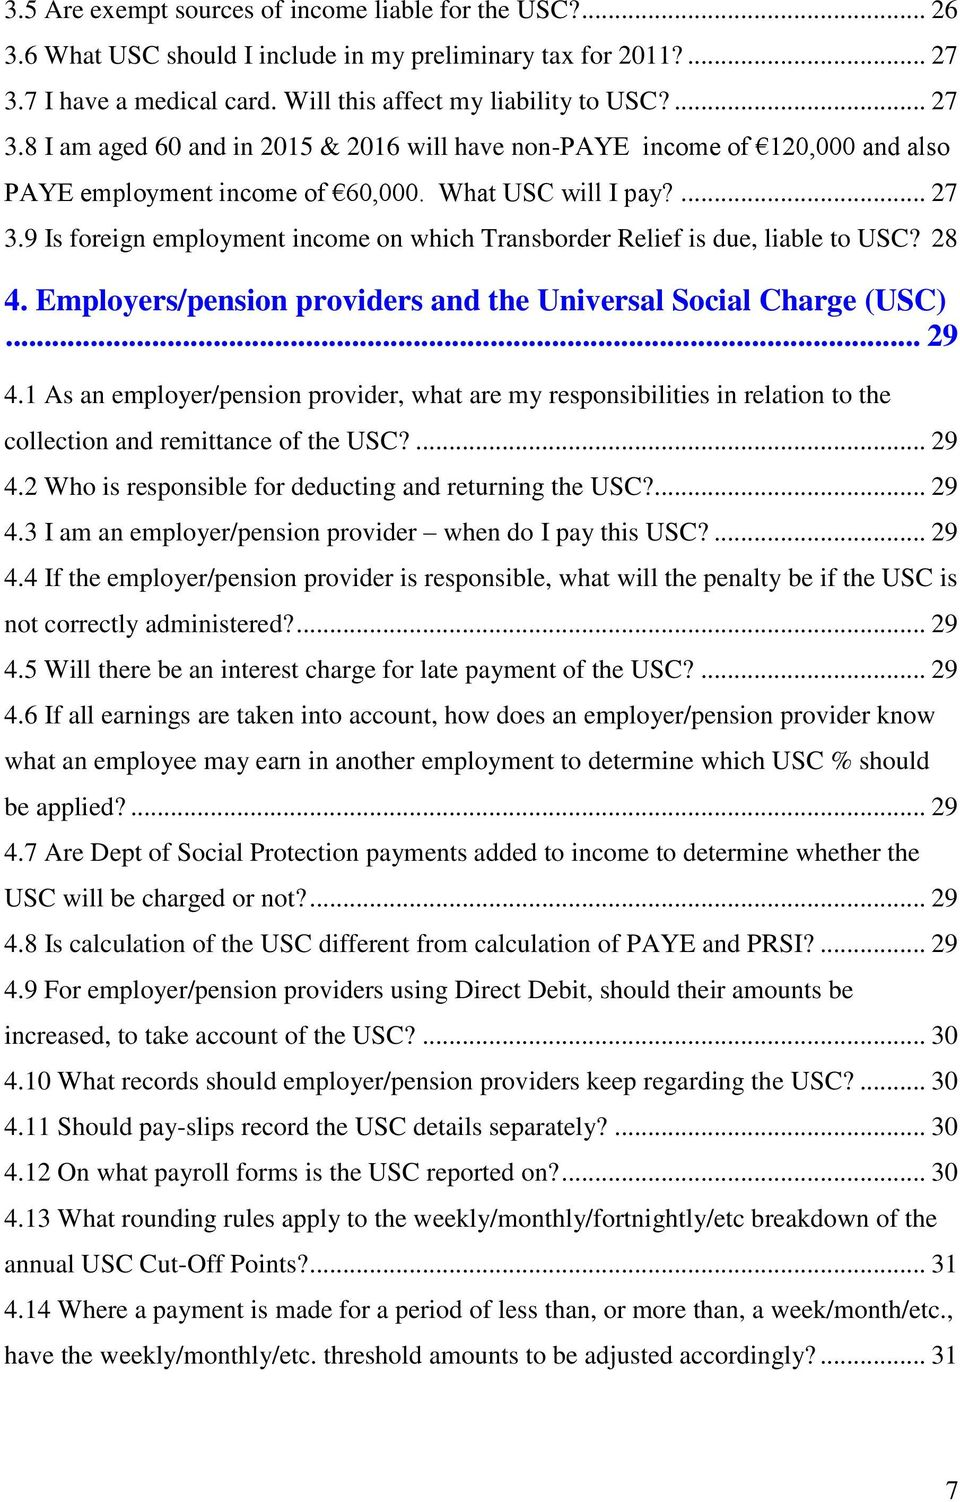 What USC will I pay?... 27 3.9 Is foreign employment income on which Transborder Relief is due, liable to USC? 28 4. Employers/pension providers and the Universal Social Charge (USC)... 29 4.